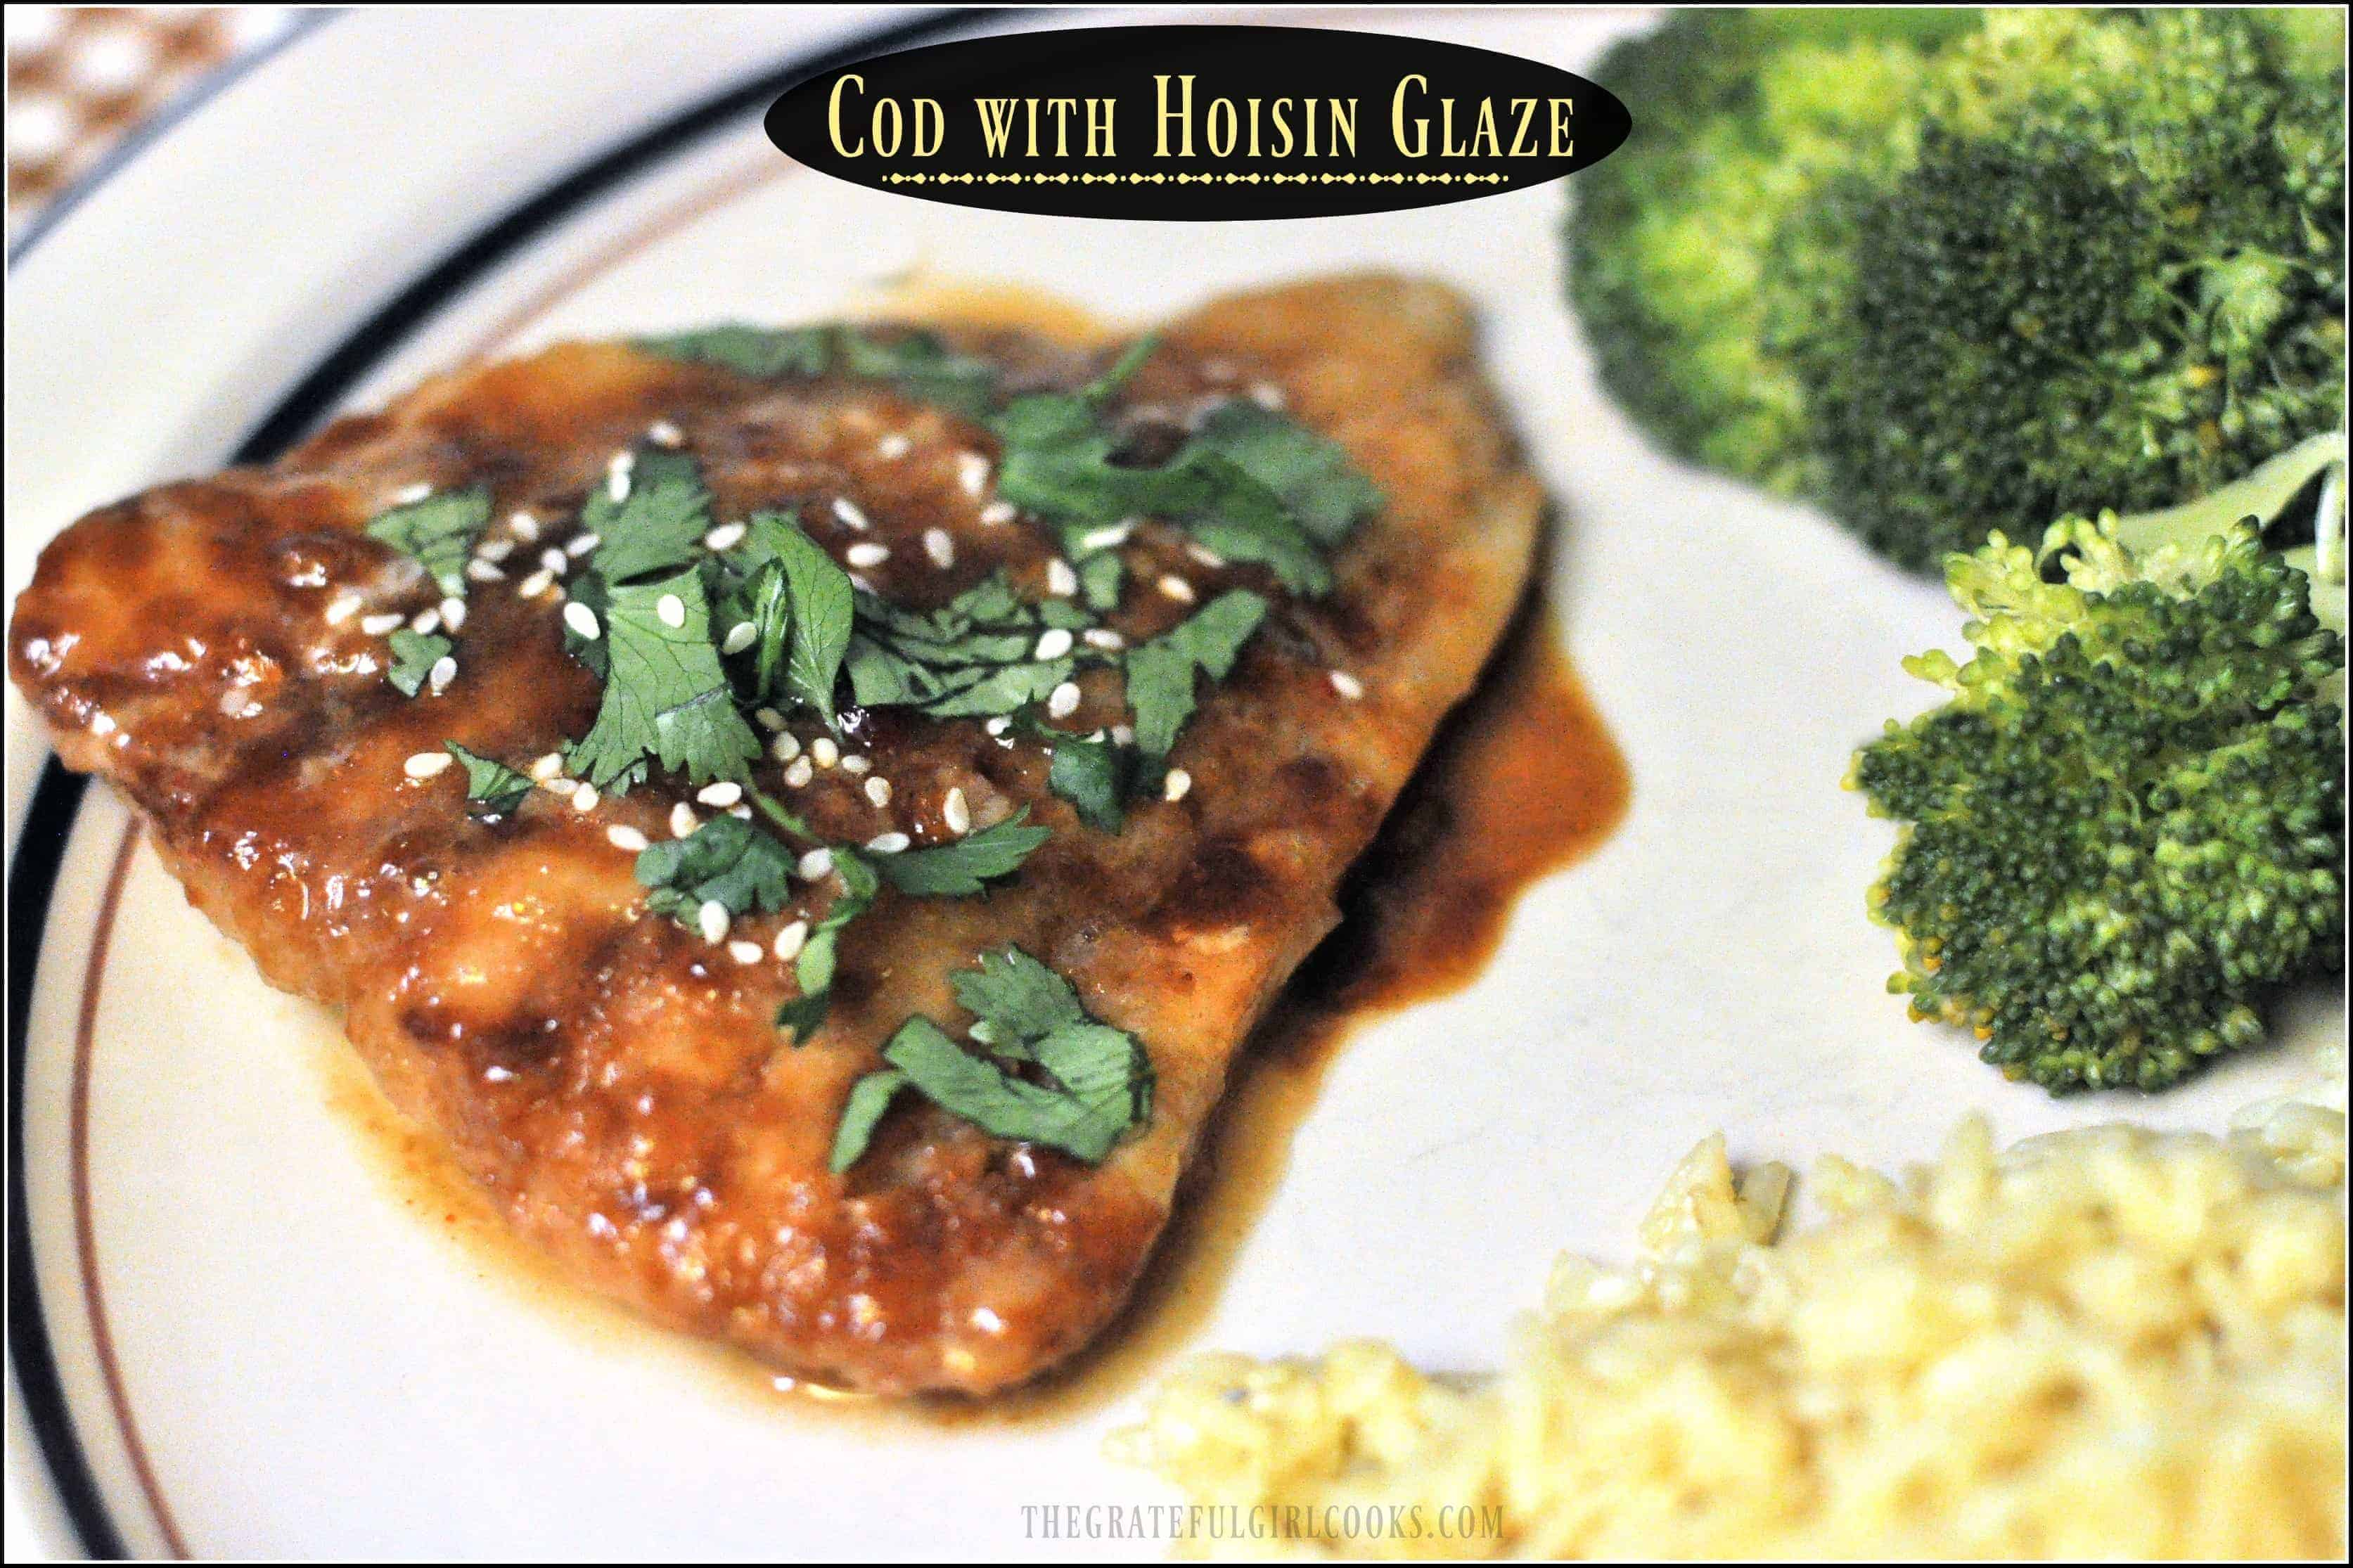 Cod with Hoisin Glaze / The Grateful Girl Cooks! Easy, quick, delicious and low in calories! (Weight Watchers 2 Smart Points)